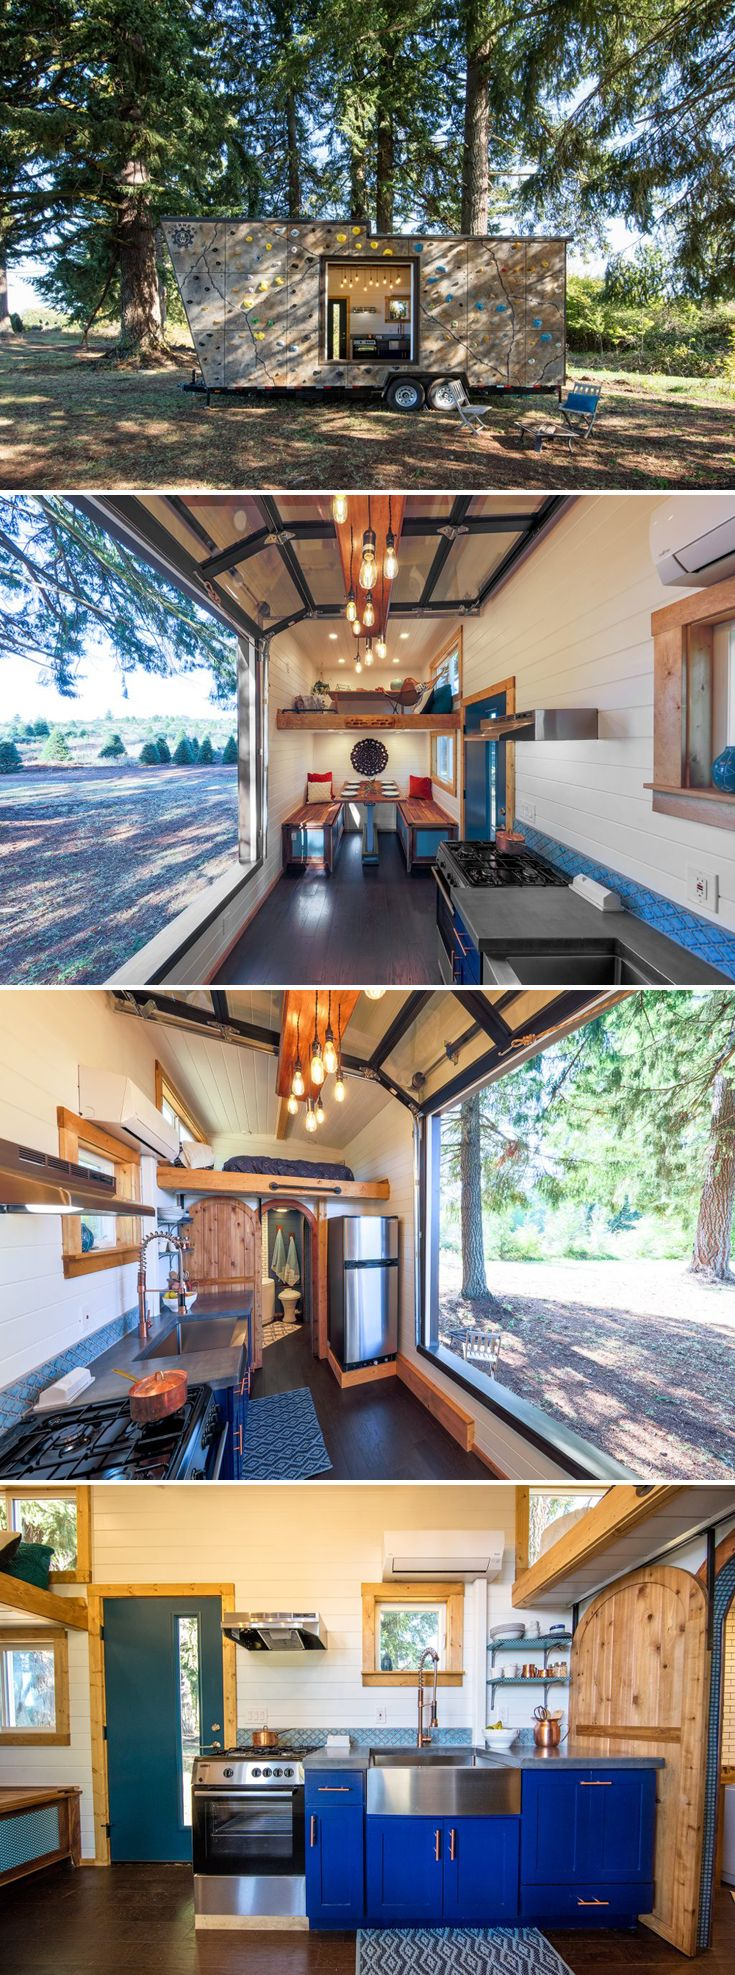 The Perfect Adventure Homes - Tiny, Mobile And On Wheels | spo ...